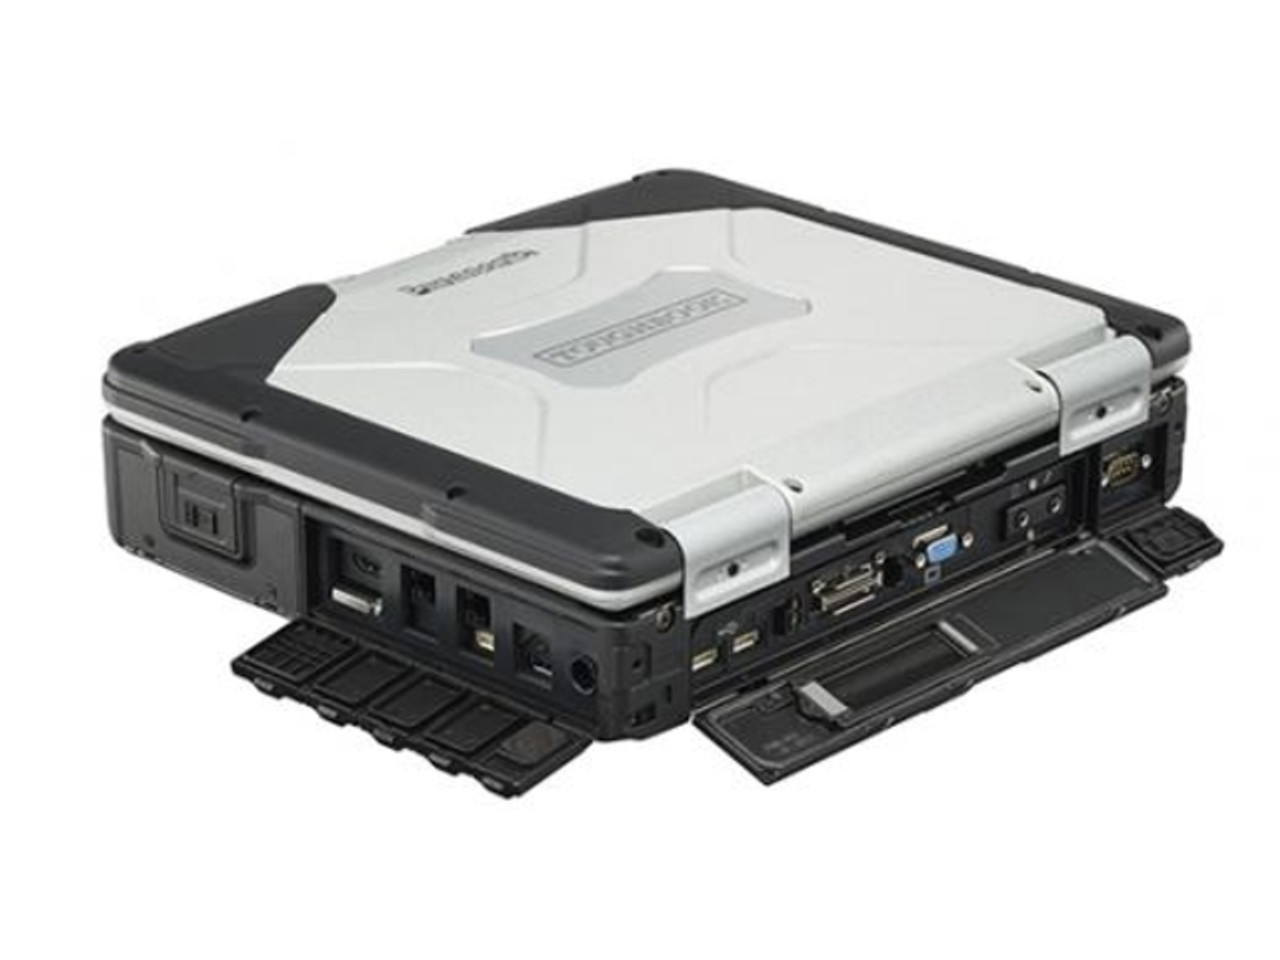 Panasonic Toughbook CF-31 MK6 ports